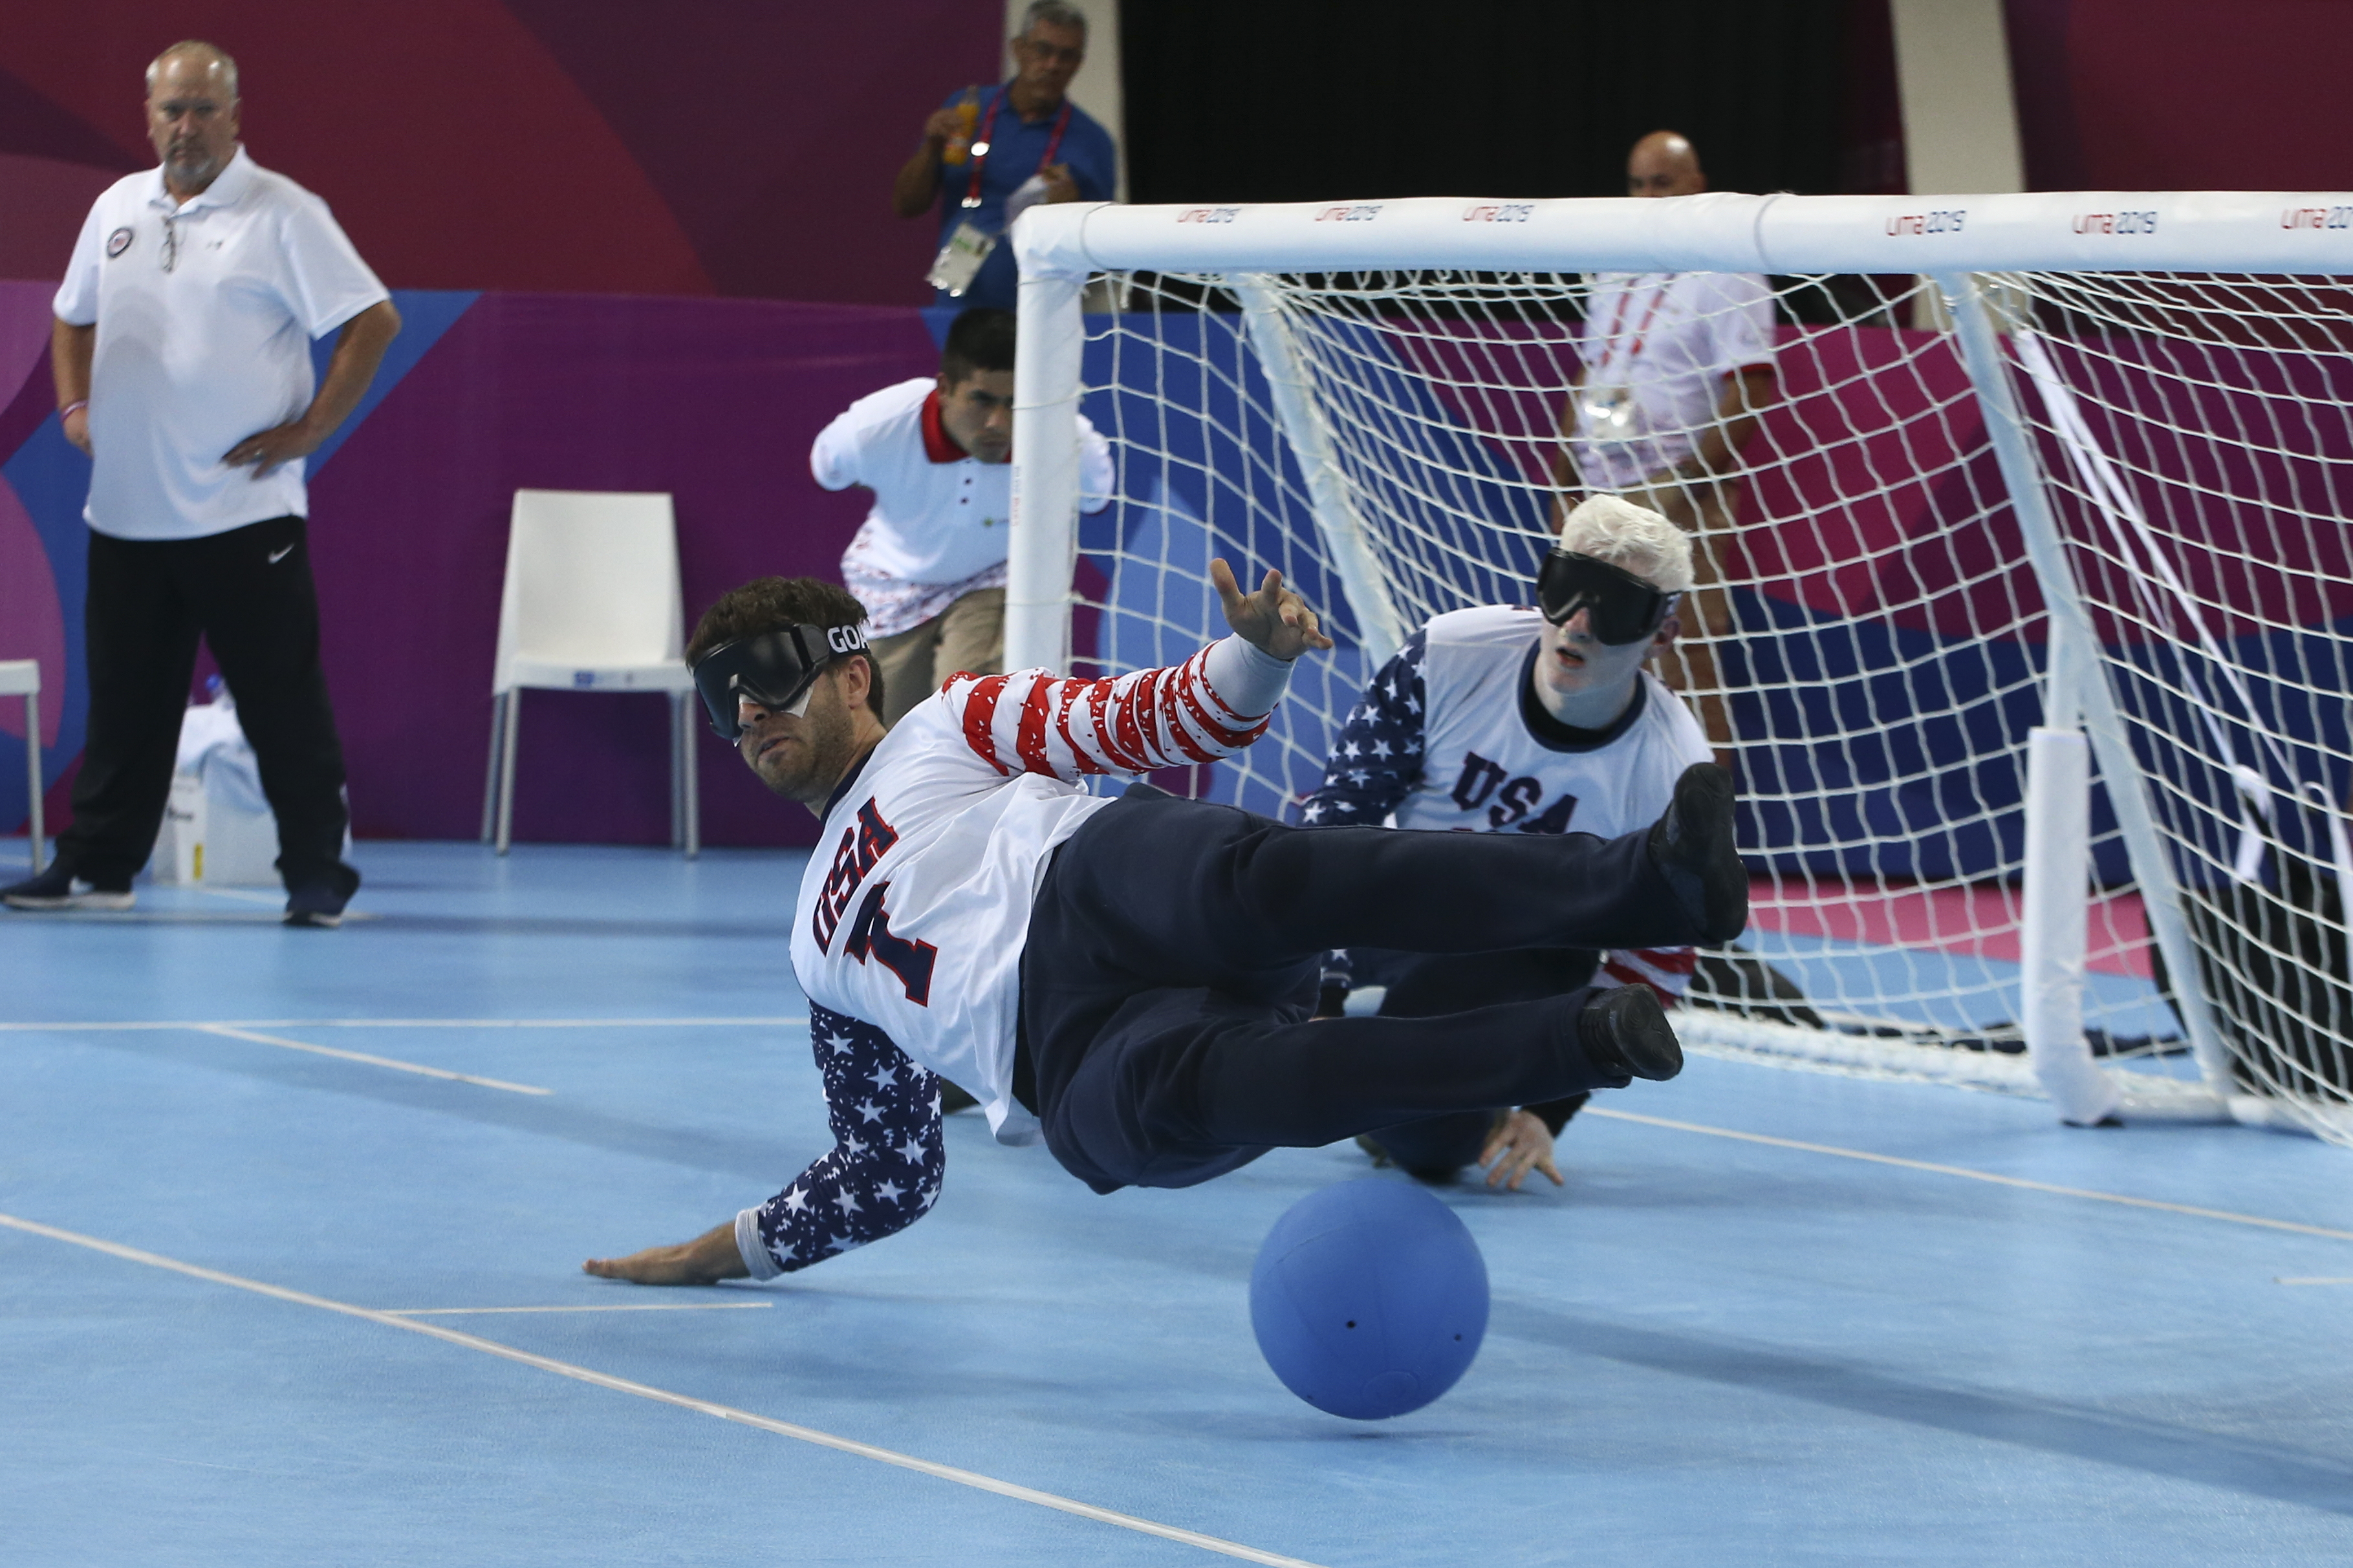 Matthew Simpson (foreground) against Brazil at the 2019 Parapan American Games. Courtesy 2019 Parapan American Games in Lima, Peru.